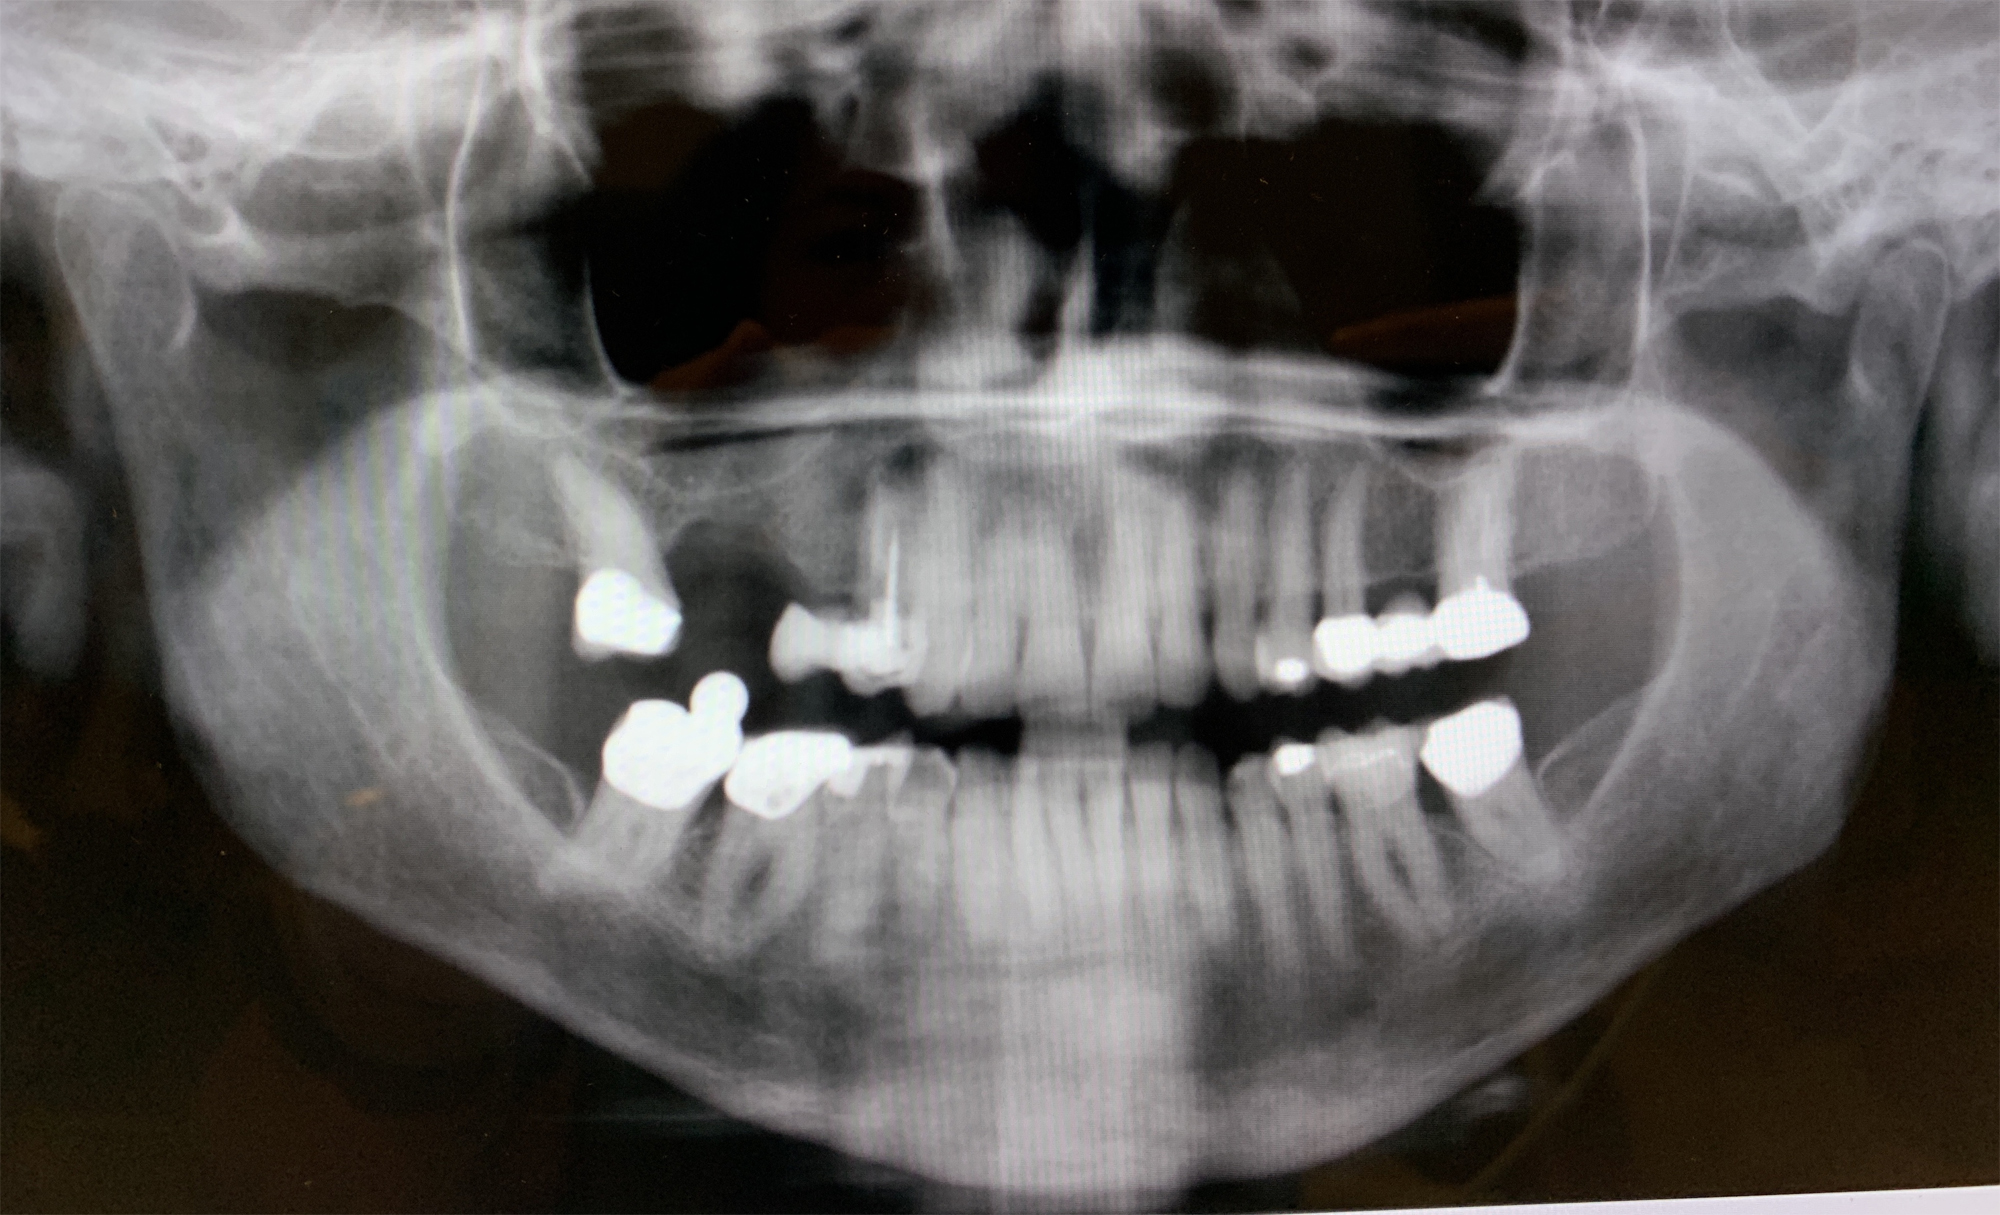 Panoramic X-Ray